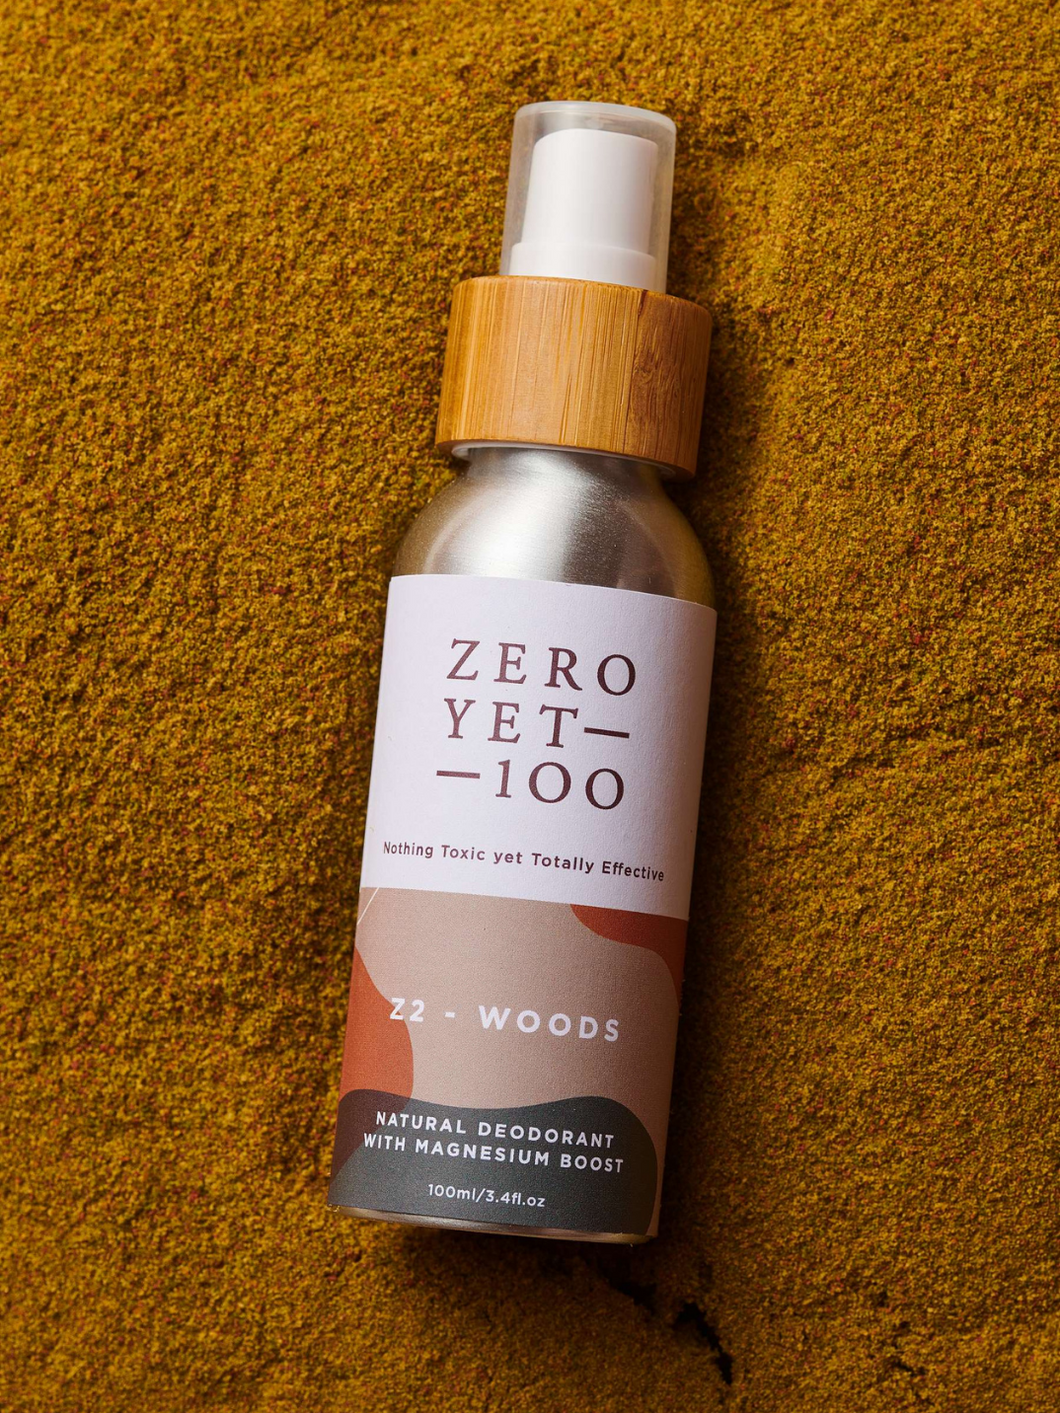 Z2 Woods Deodorant Spray Zero Yet 100 plastic-free packaging ethical skincare